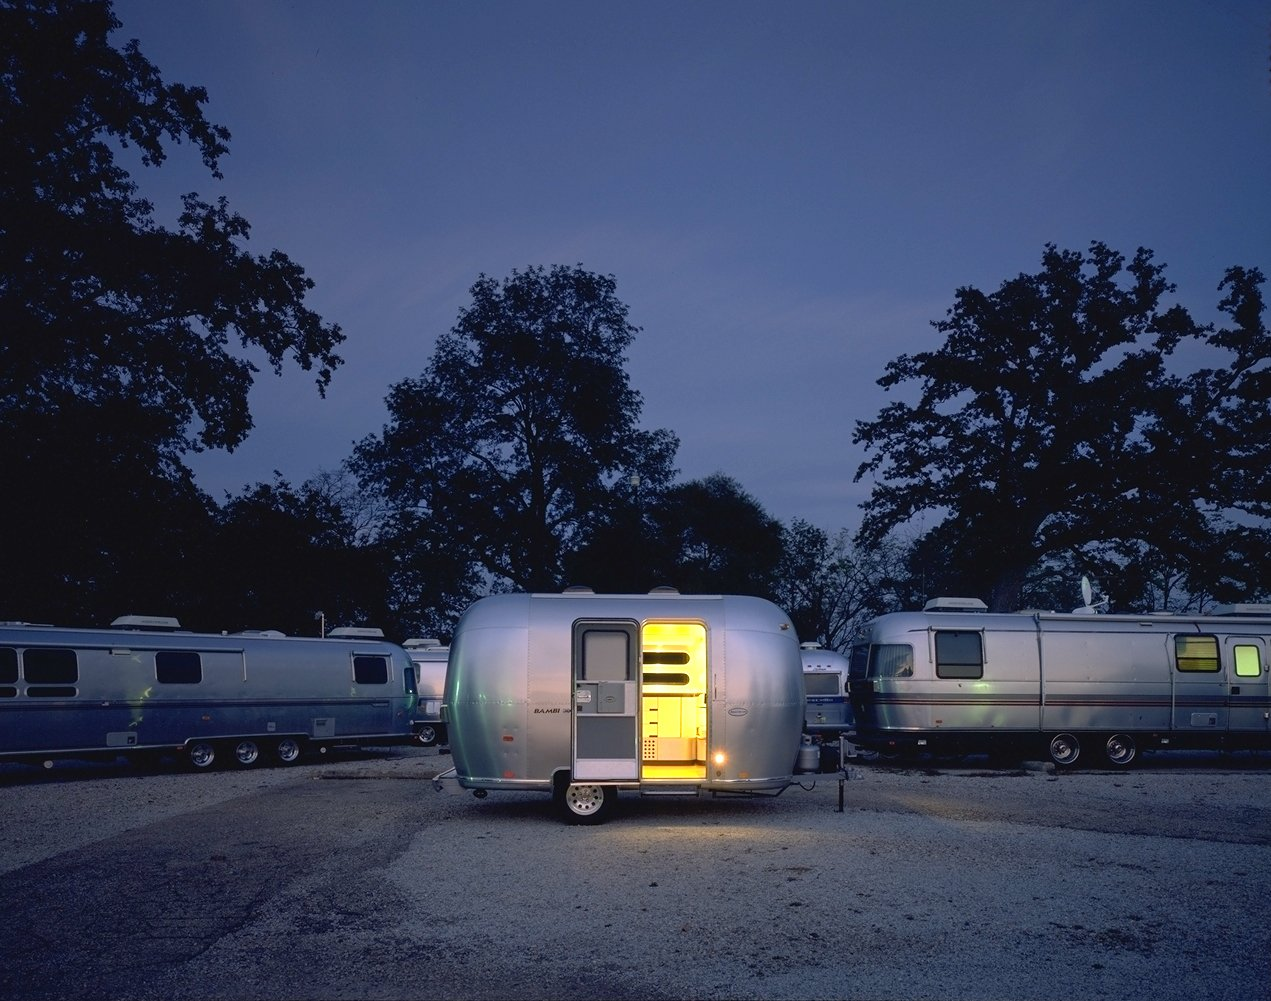 Photo 1 of 8 in Airstream: Re-designing an American icon